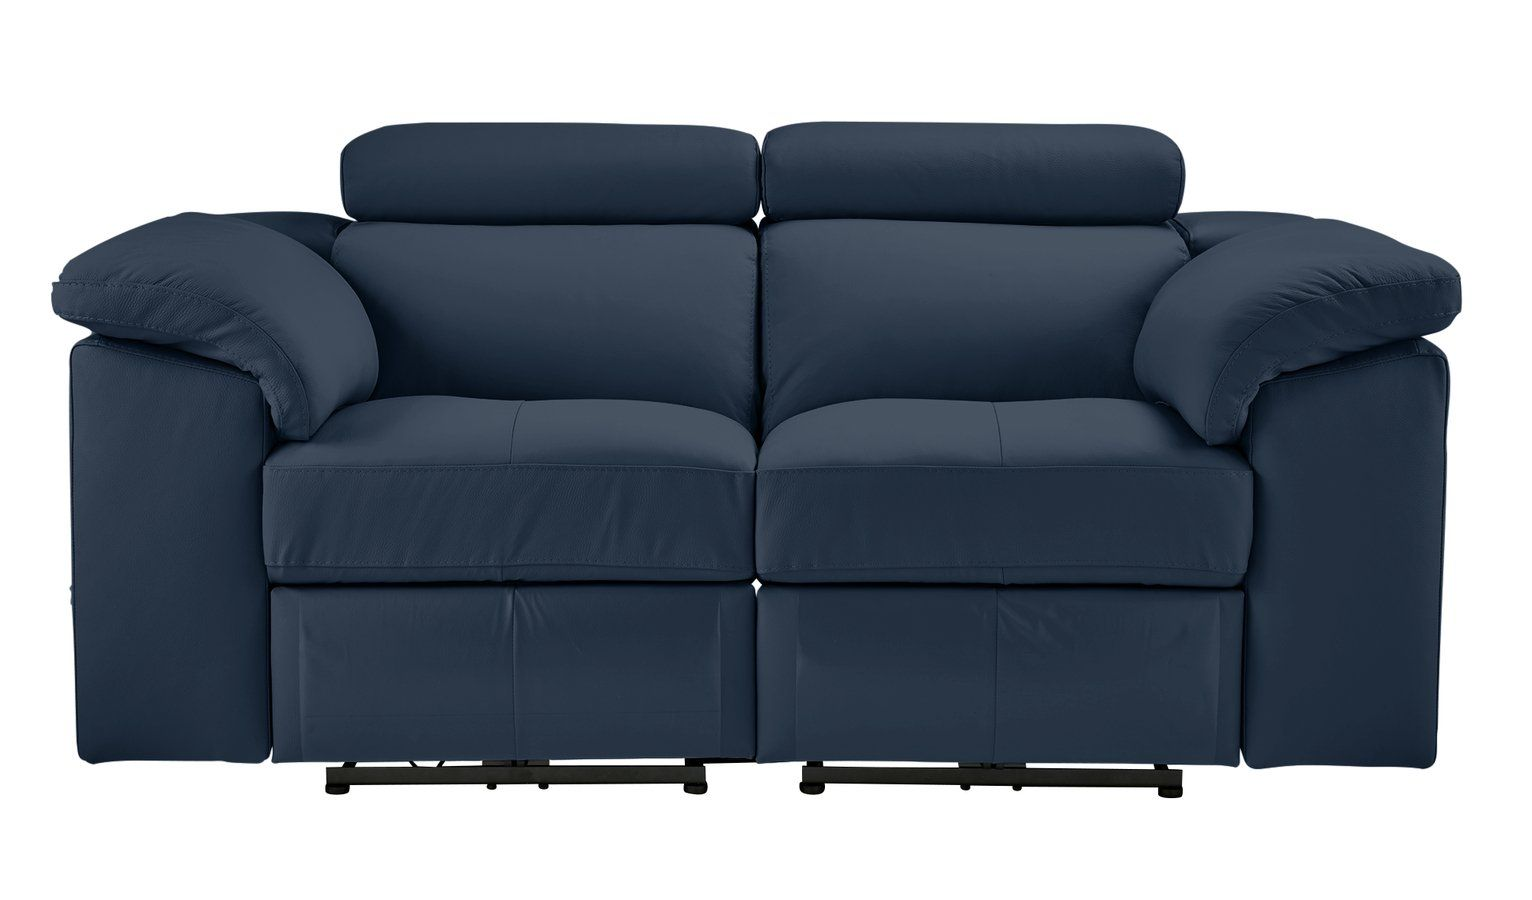 Argos Home Valencia 2 Seater Leather Recliner Sofa Blue In 2020 Leather Recliner Reclining Sofa Sofa